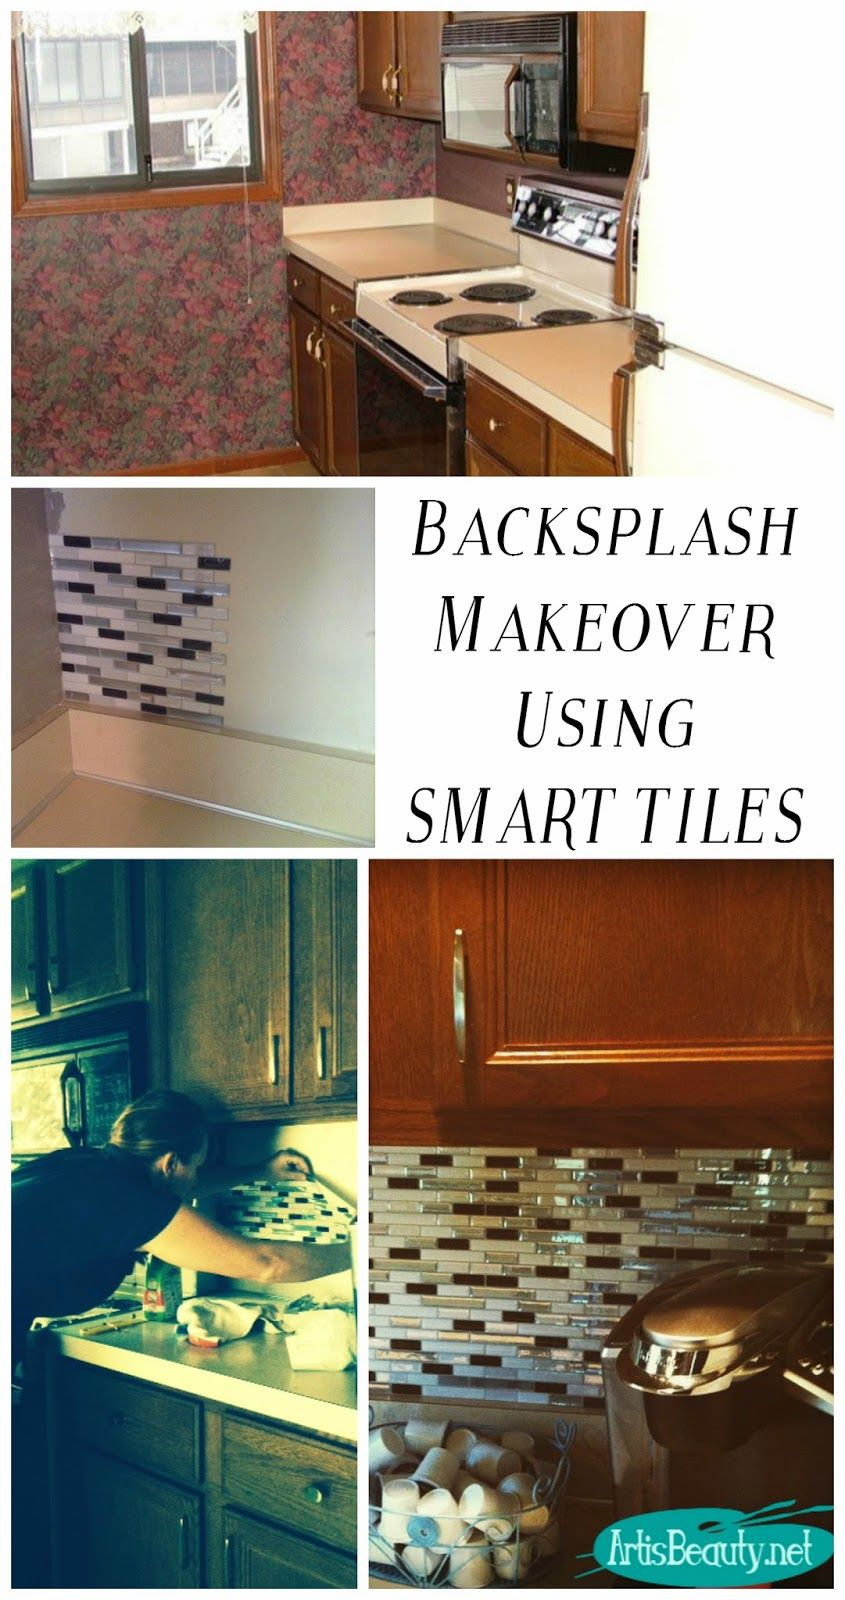 Quick kitchen backsplash makeover using smart tiles smart tiles art is beauty quick kitchen backsplash makeover using smart tiles dailygadgetfo Gallery